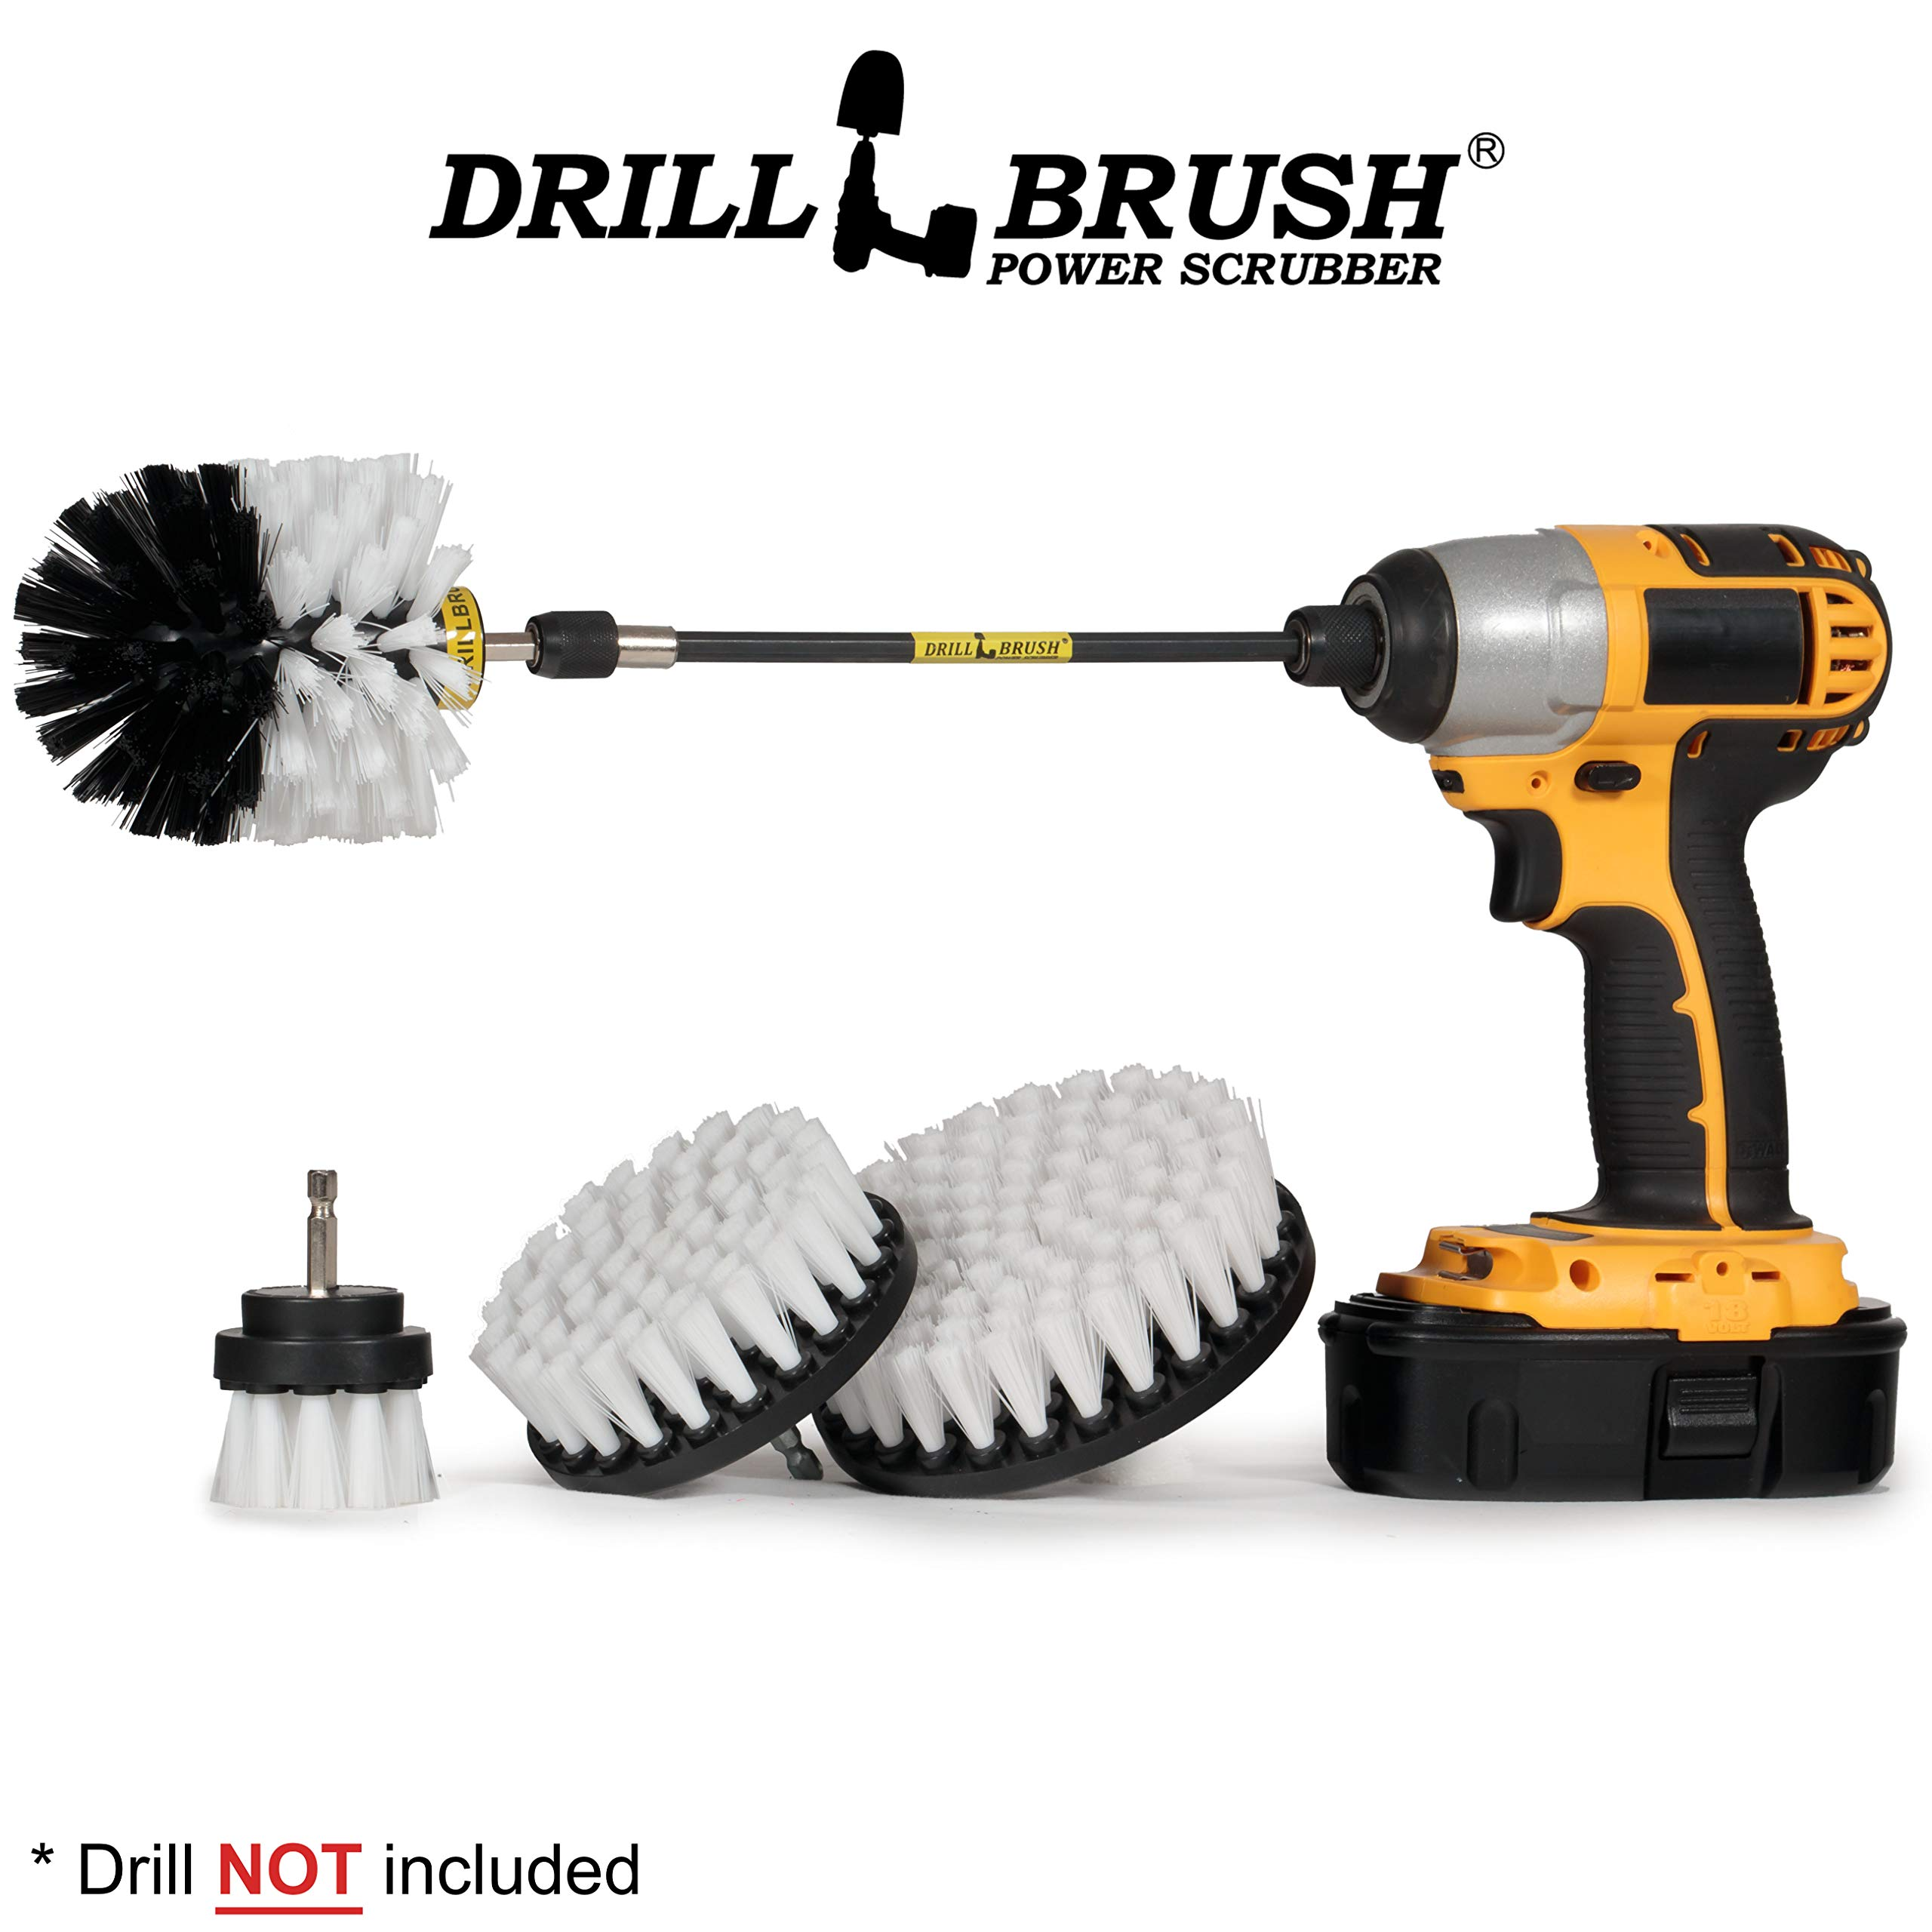 Motorcycle Accessories - Soft White Drill Brush Kit with Extension - Car Wash - Cleaning Supplies - Automotive Tire, Wheel - Boat Seat, Carpet, Interior, Upholstery, Vinyl, Fabric, Leather Cleaner by Drillbrush